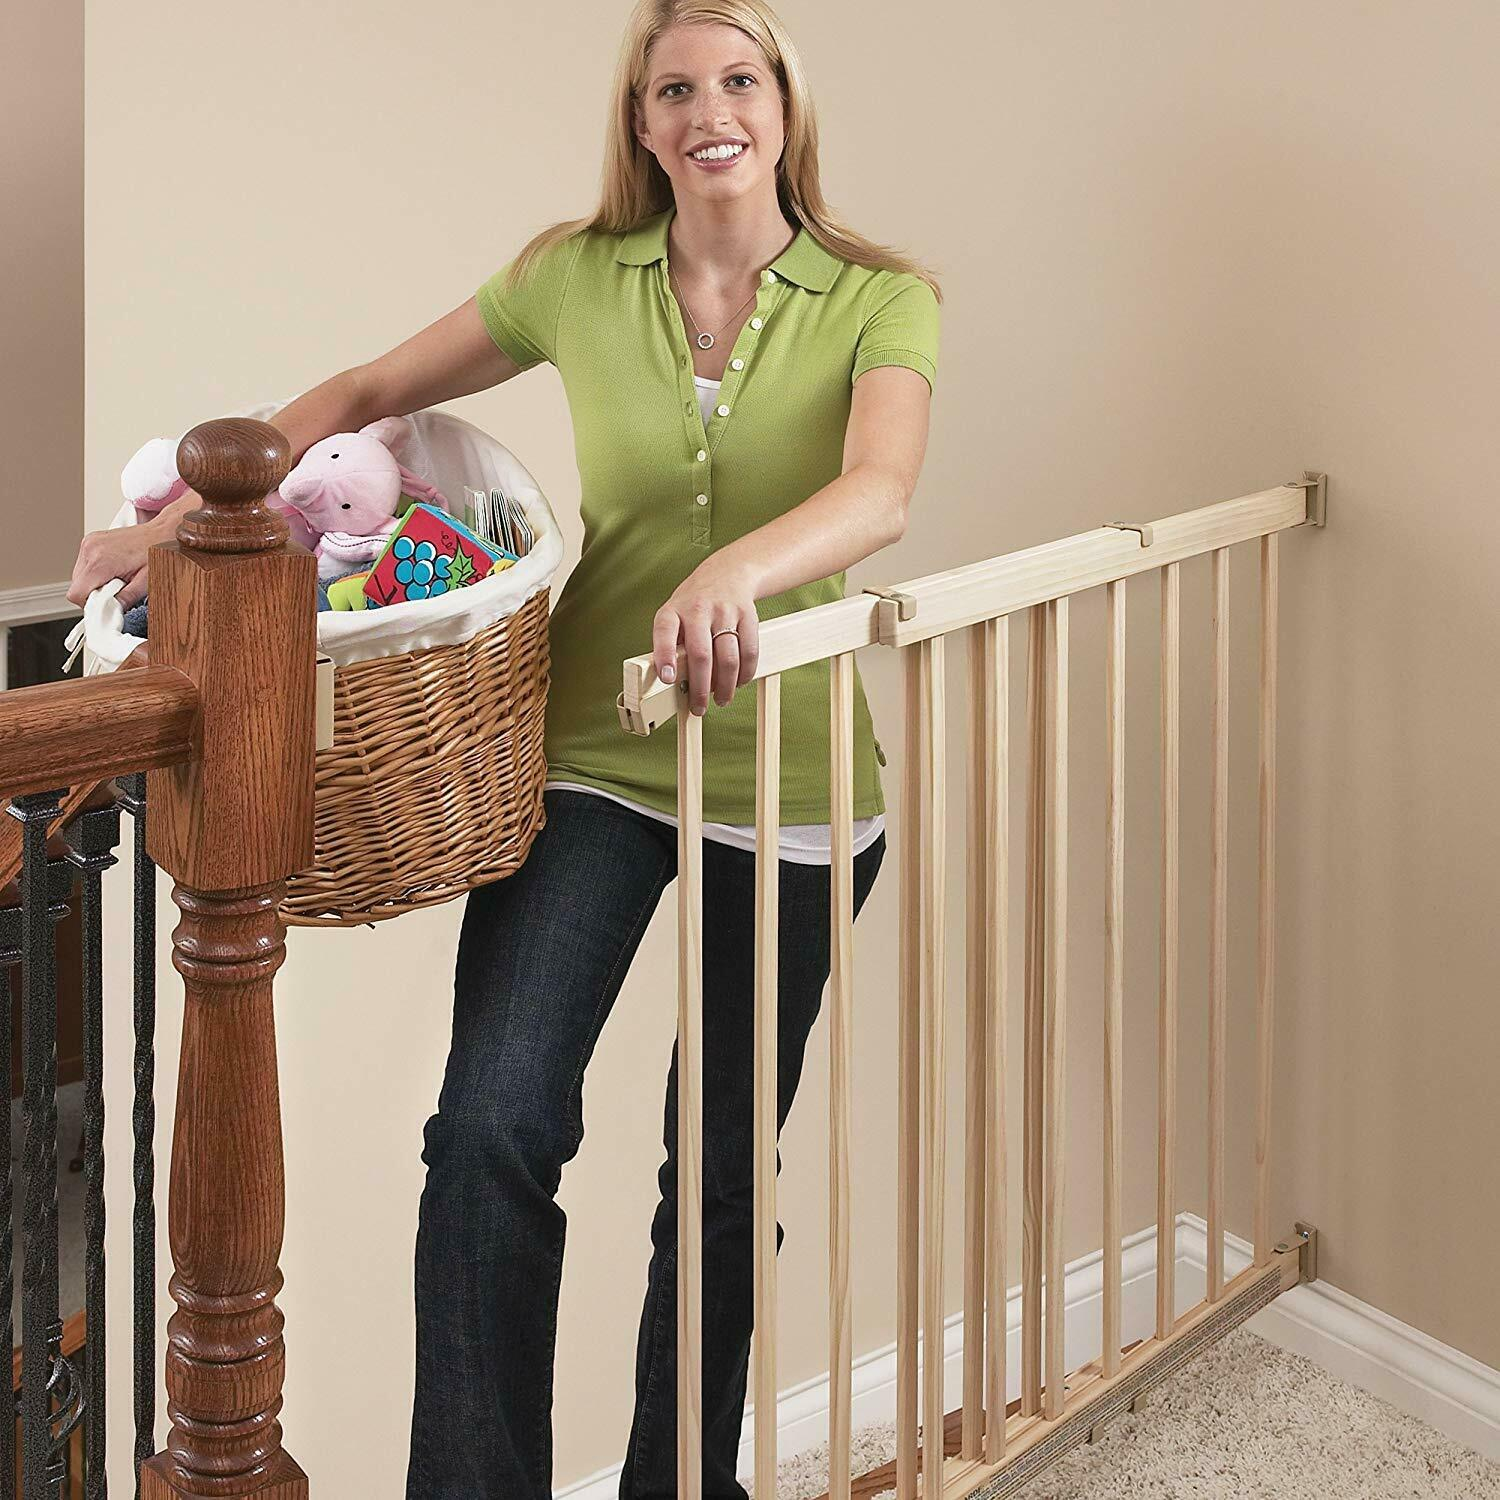 Evenflo Top of The Stair Extra Tall Hardware Mount Gate Baby Dark Wood 3DAYSHIP